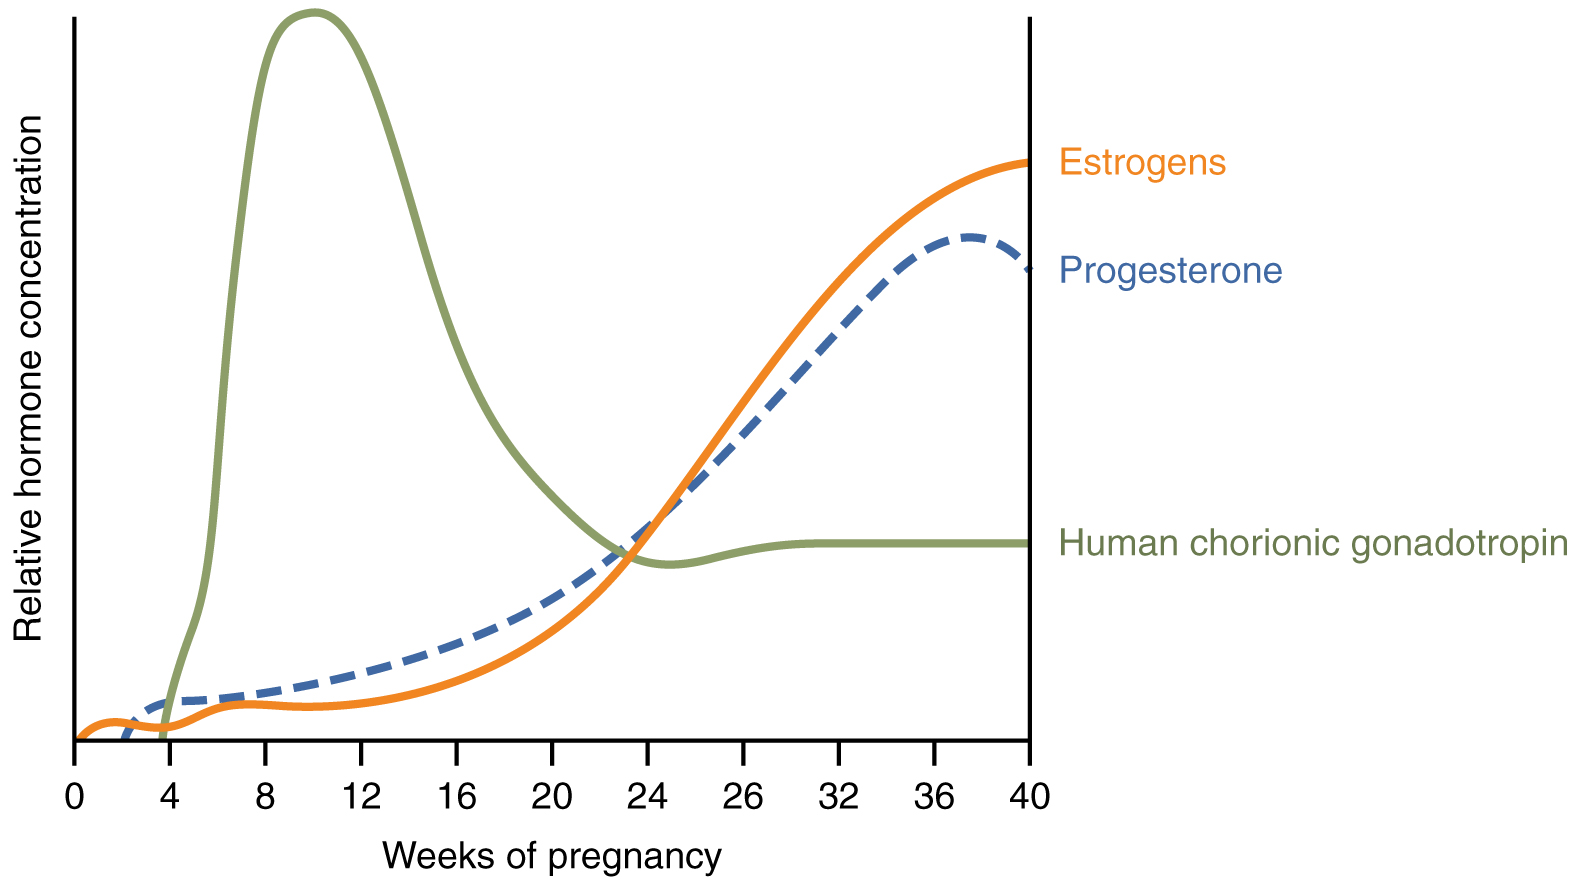 hight resolution of a graph hormone concentration versus week of pregnancy shows how three hormones vary throughout pregnancy figure 3